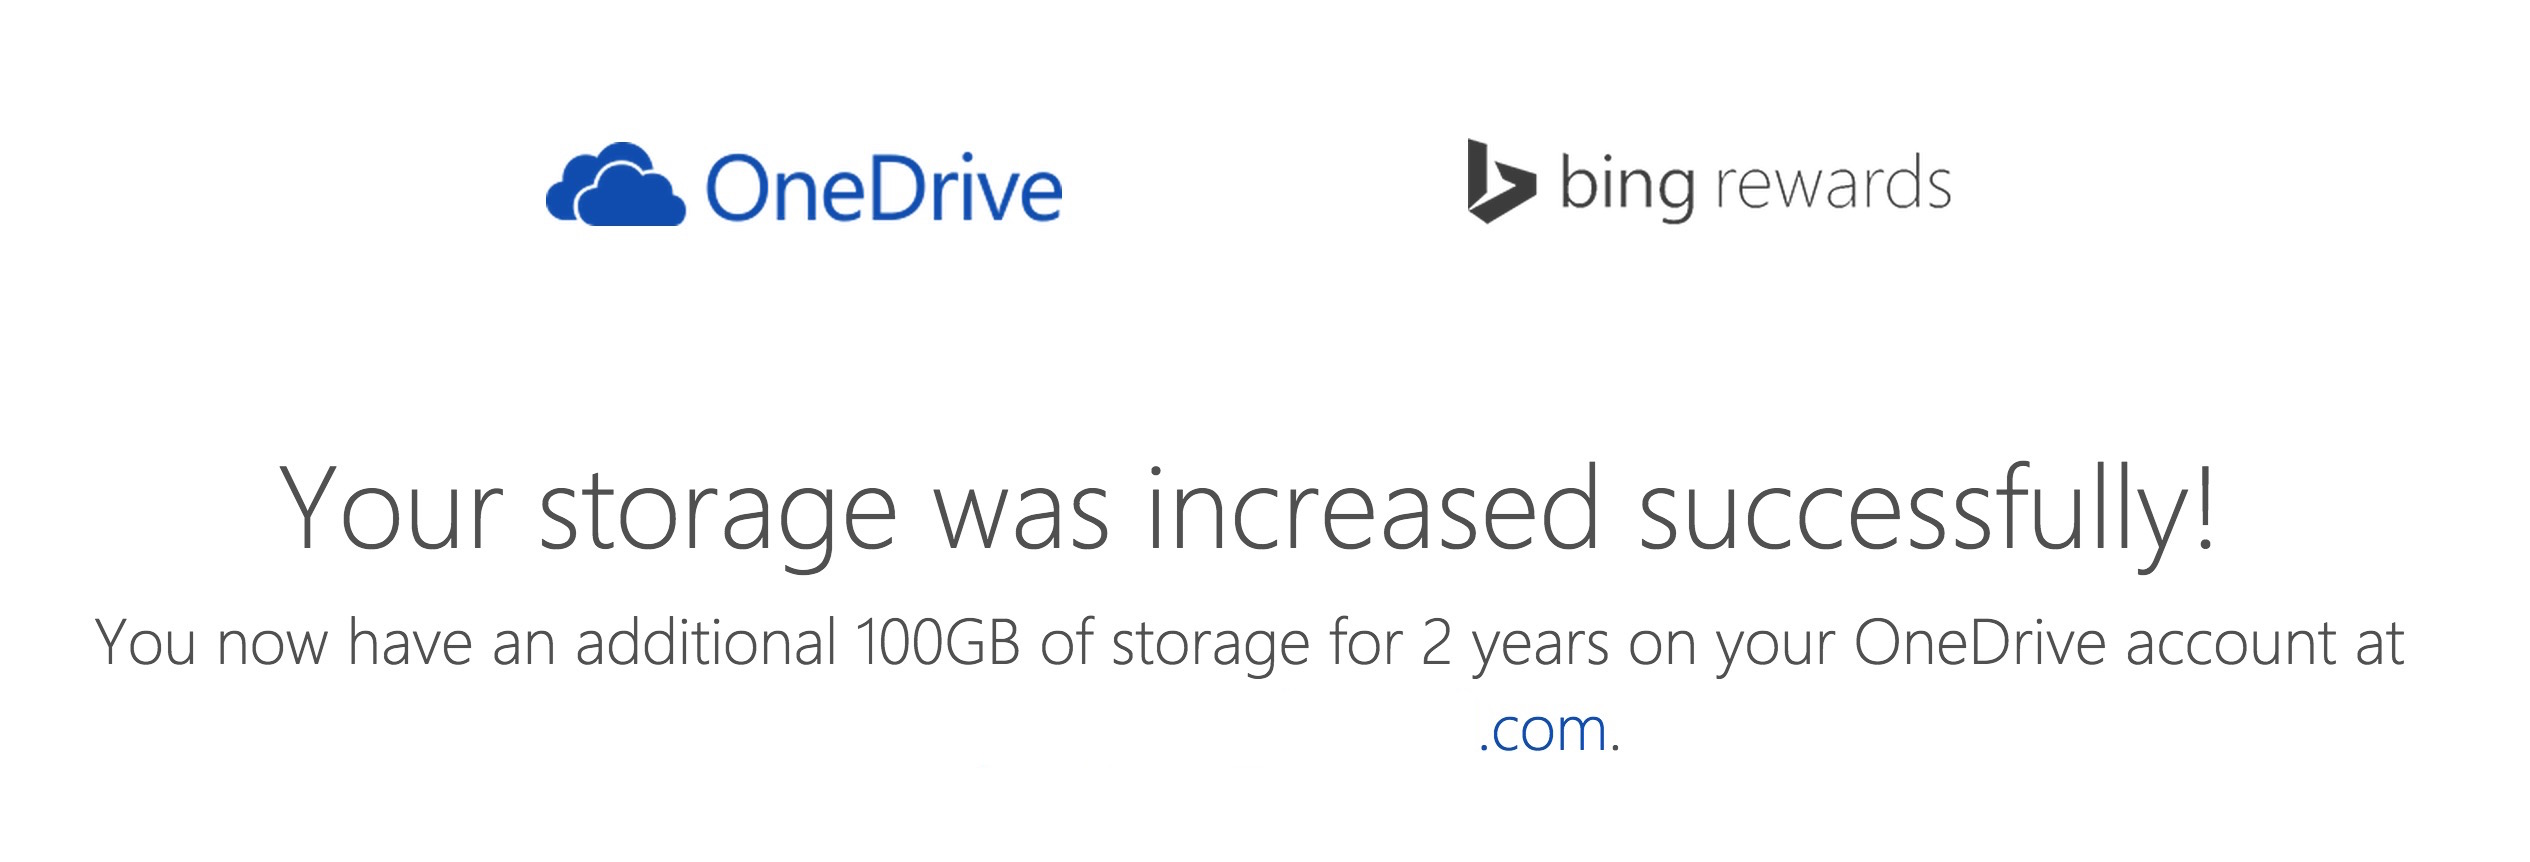 onedrive-100gb-confirm